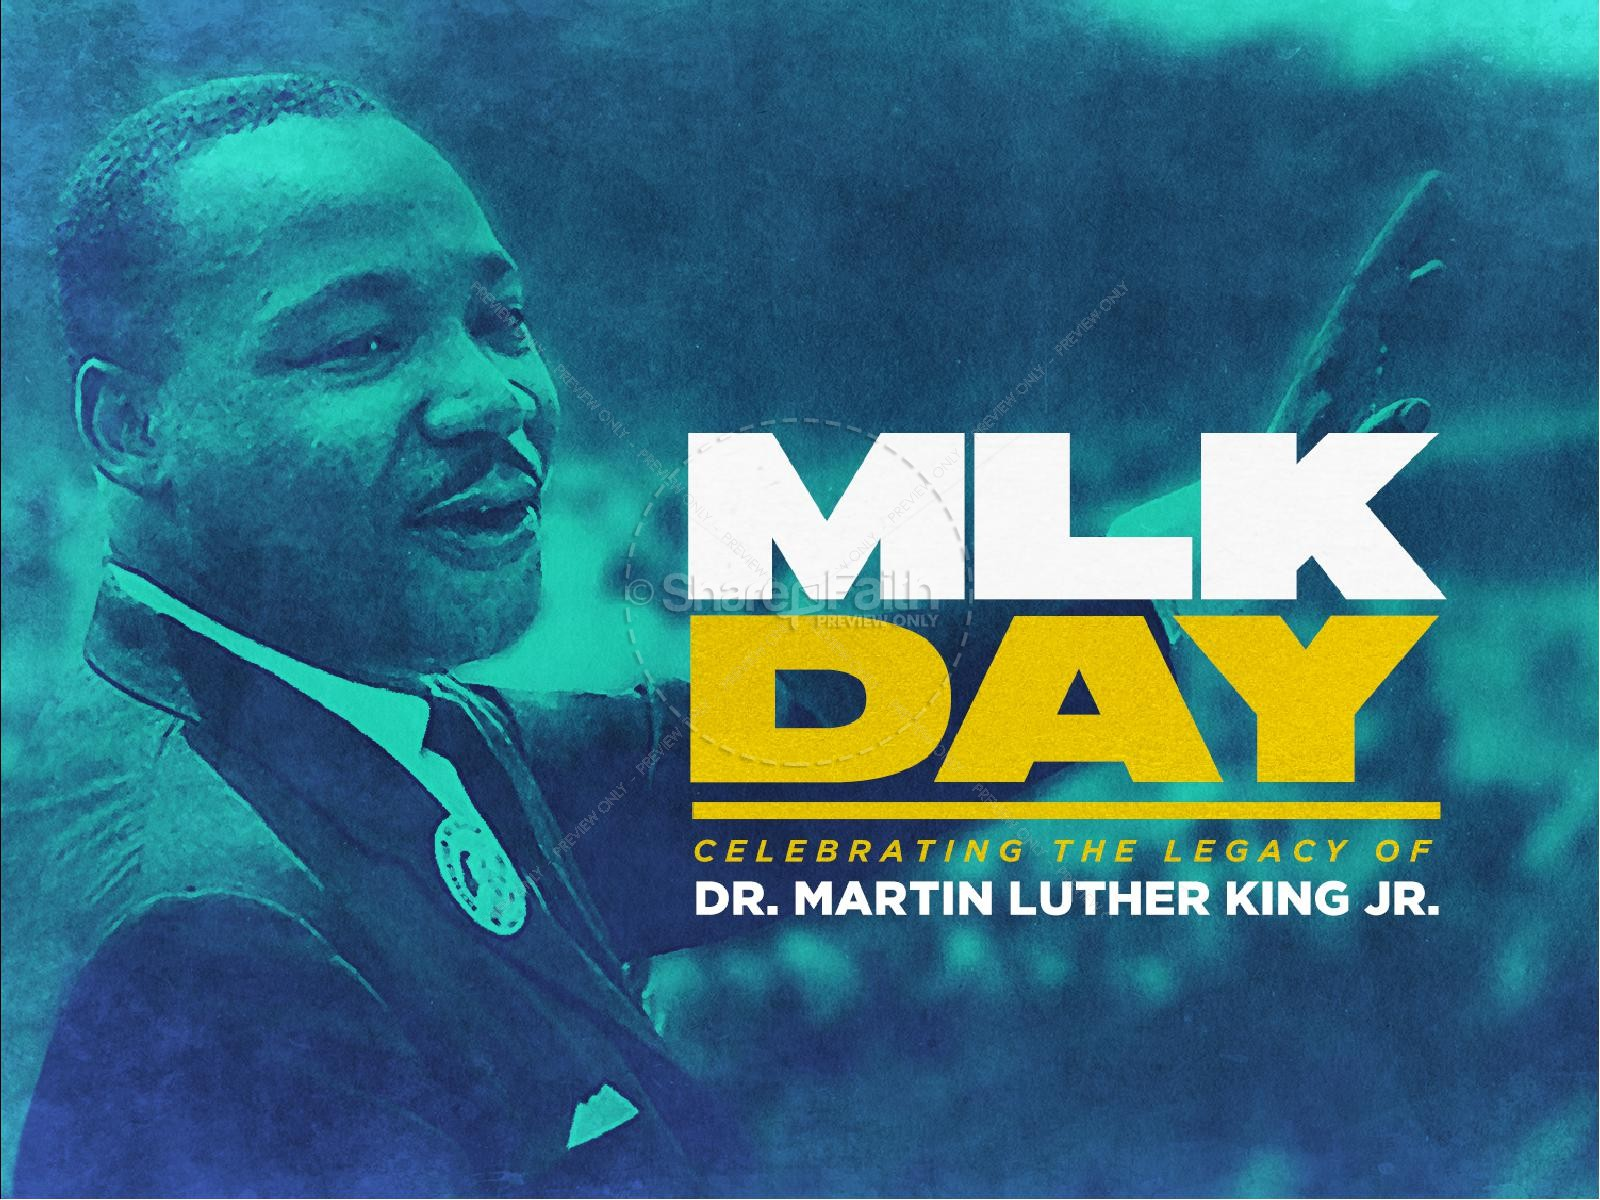 Martin Luther King Jr Day Service Graphic | slide 1